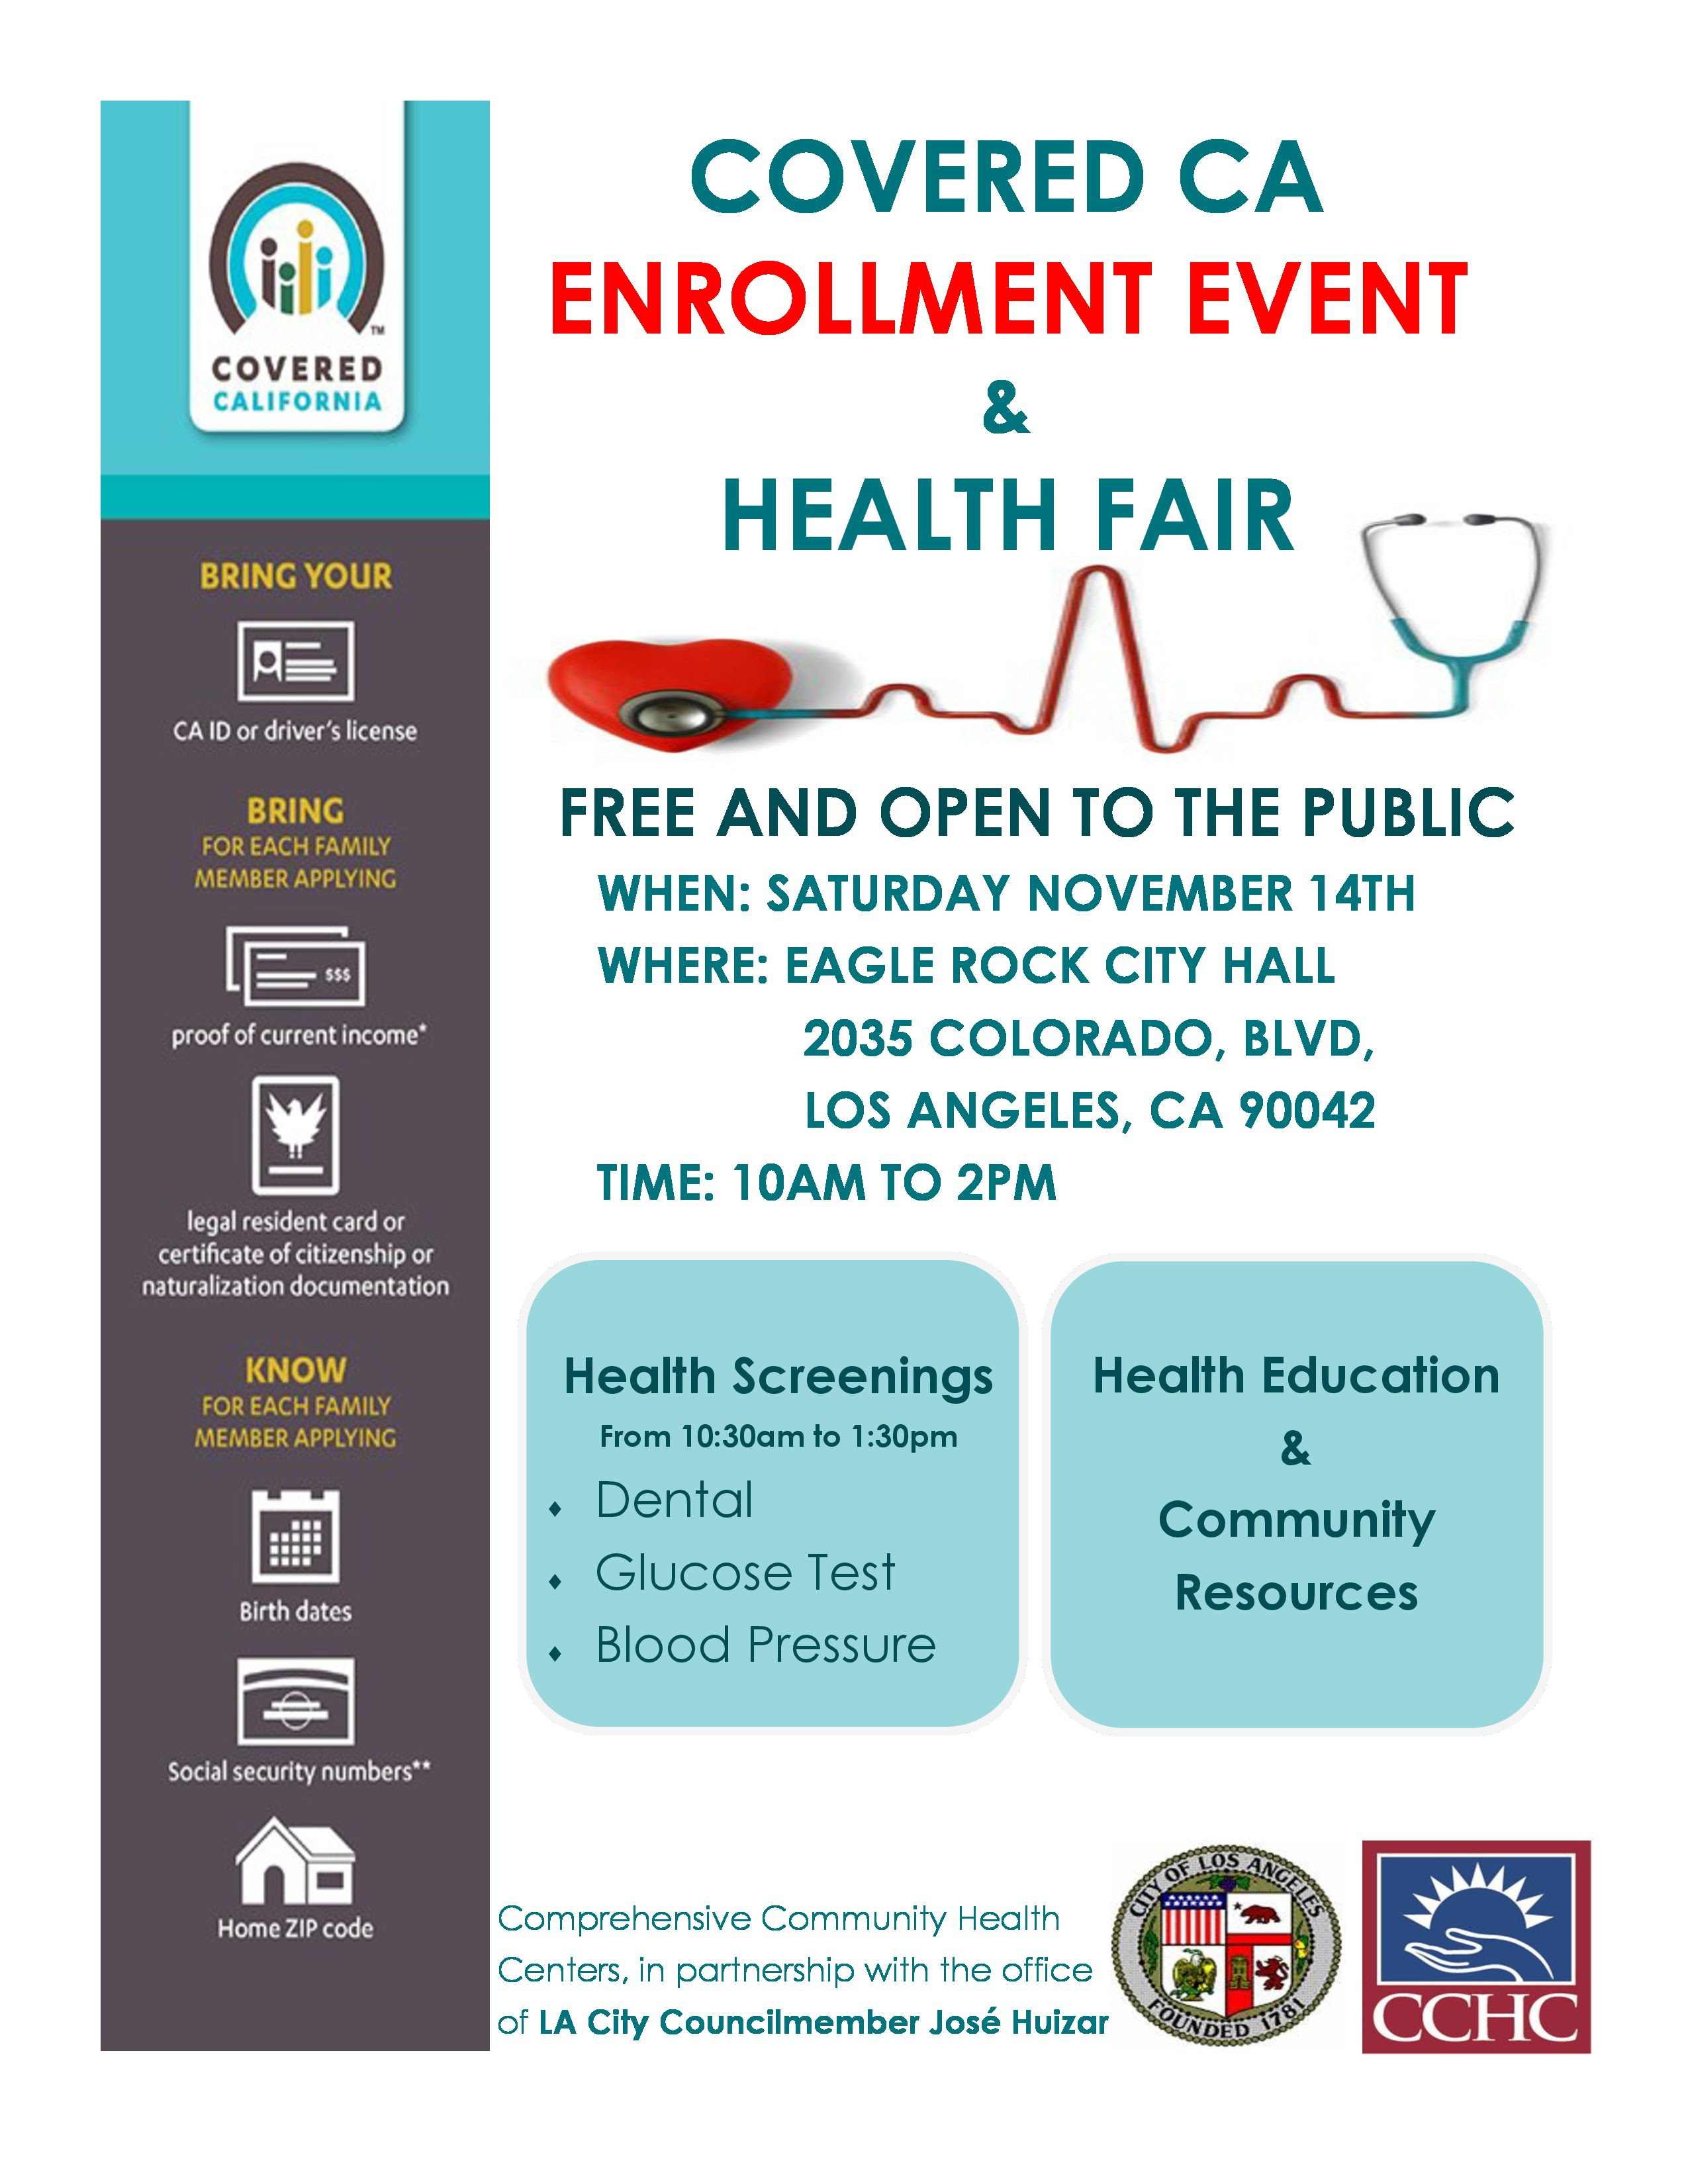 CoveredCAEnrollmentEvent_HealthFair.jpg